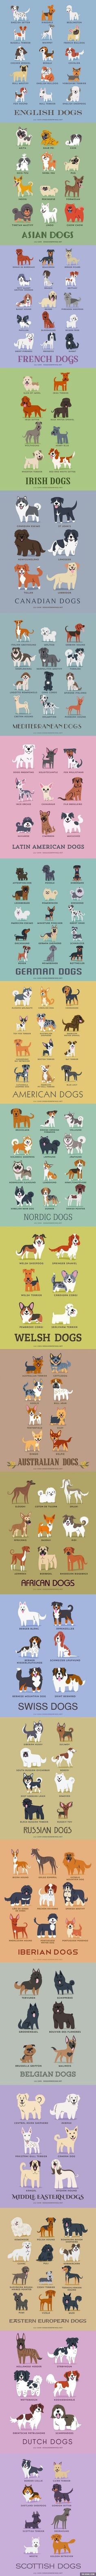 """Dogs Of The World"" Grouped By Their Geographic Origins I have an Asian dog and a German dog:"